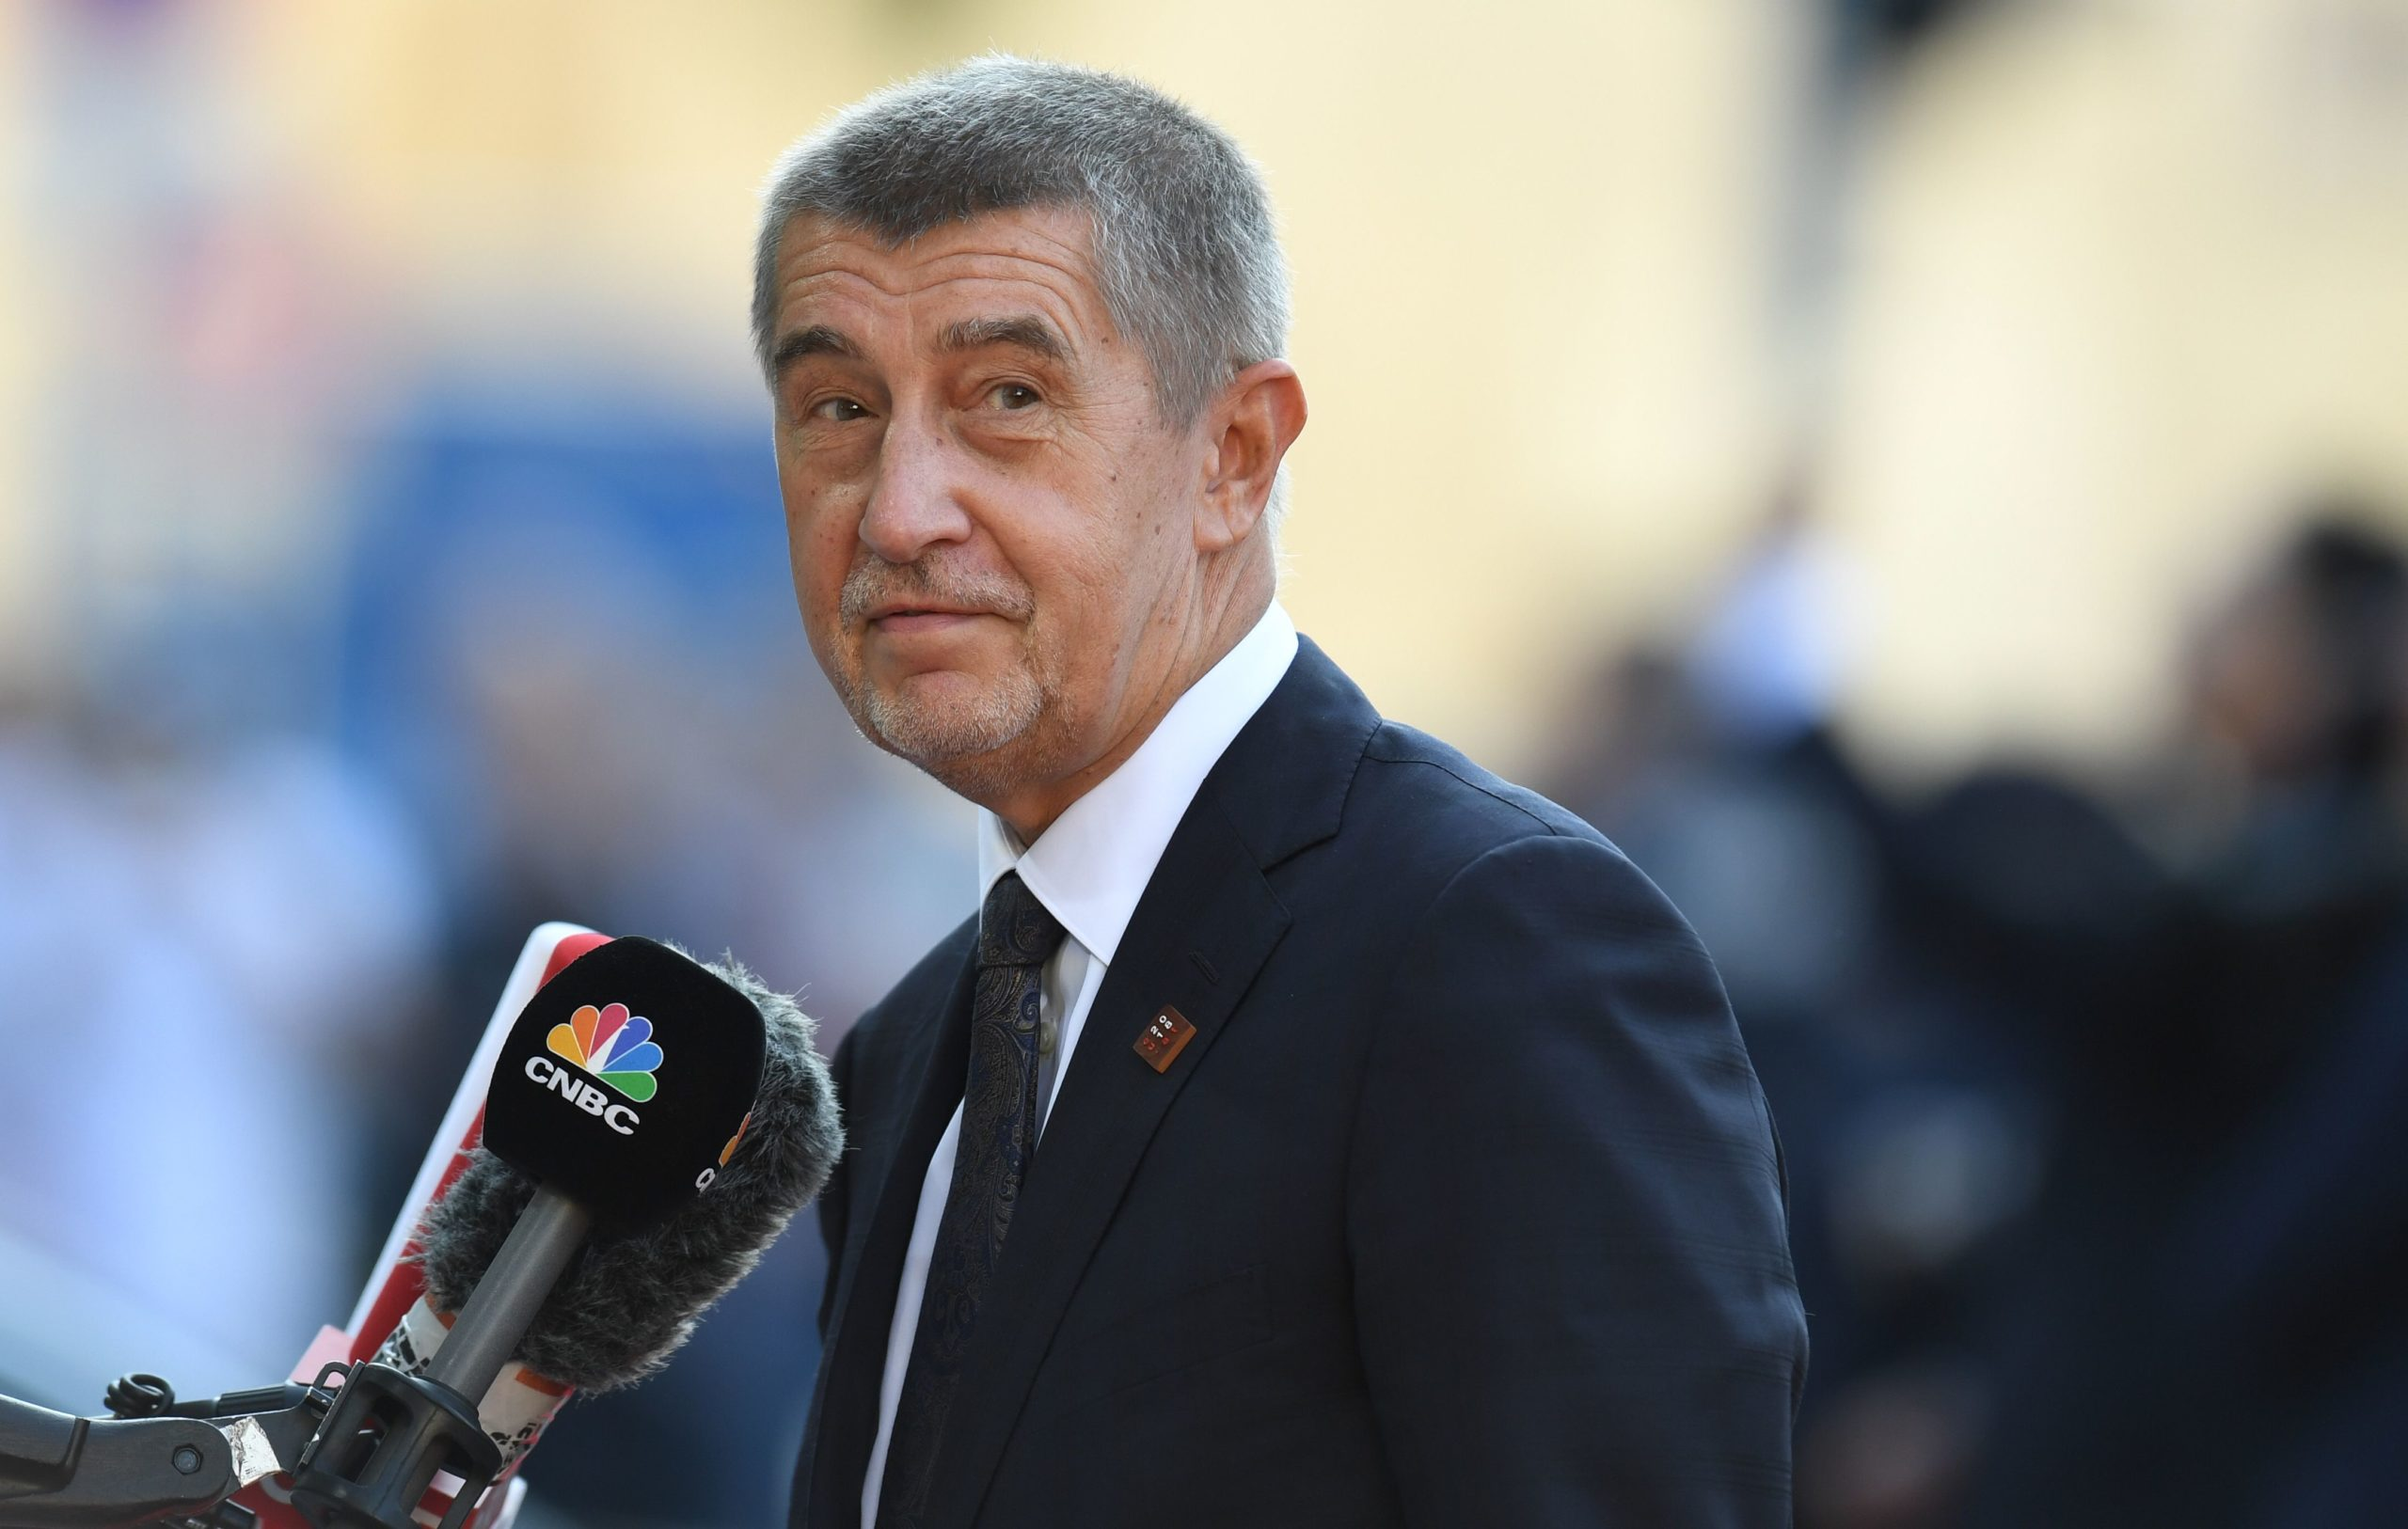 Czech Republic's Prime Minister Andrej Babis gives a statement as he arrives at the Mozarteum University to attend a plenary session part of the EU Informal Summit of Heads of State or Government in Salzburg, Austria, on September 20, 2018. (CHRISTOF STACHE/AFP via Getty Images)